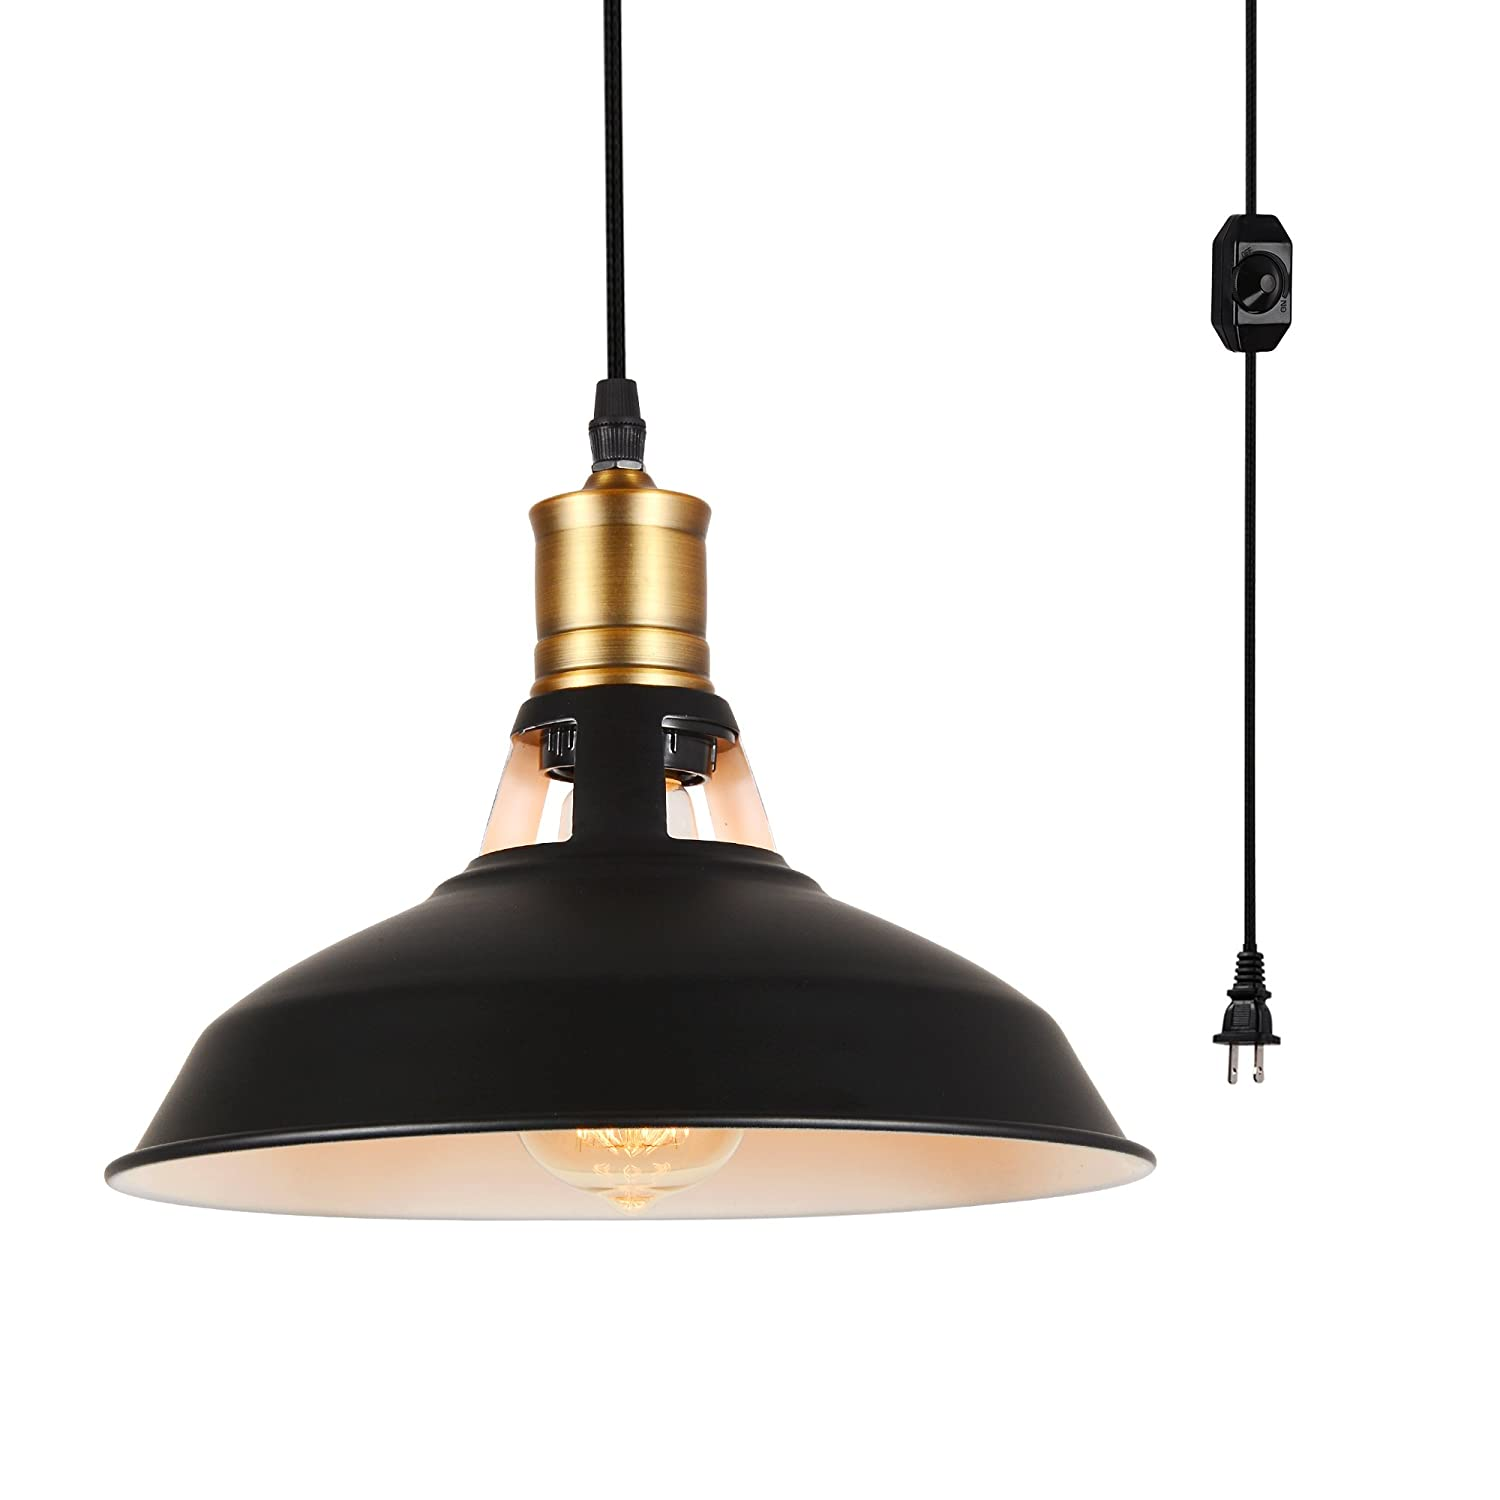 more photos c2227 55553 Details about HMVPL Industrial Plug-in Pendant Lighting Fixtures with long  Hanging Cord and